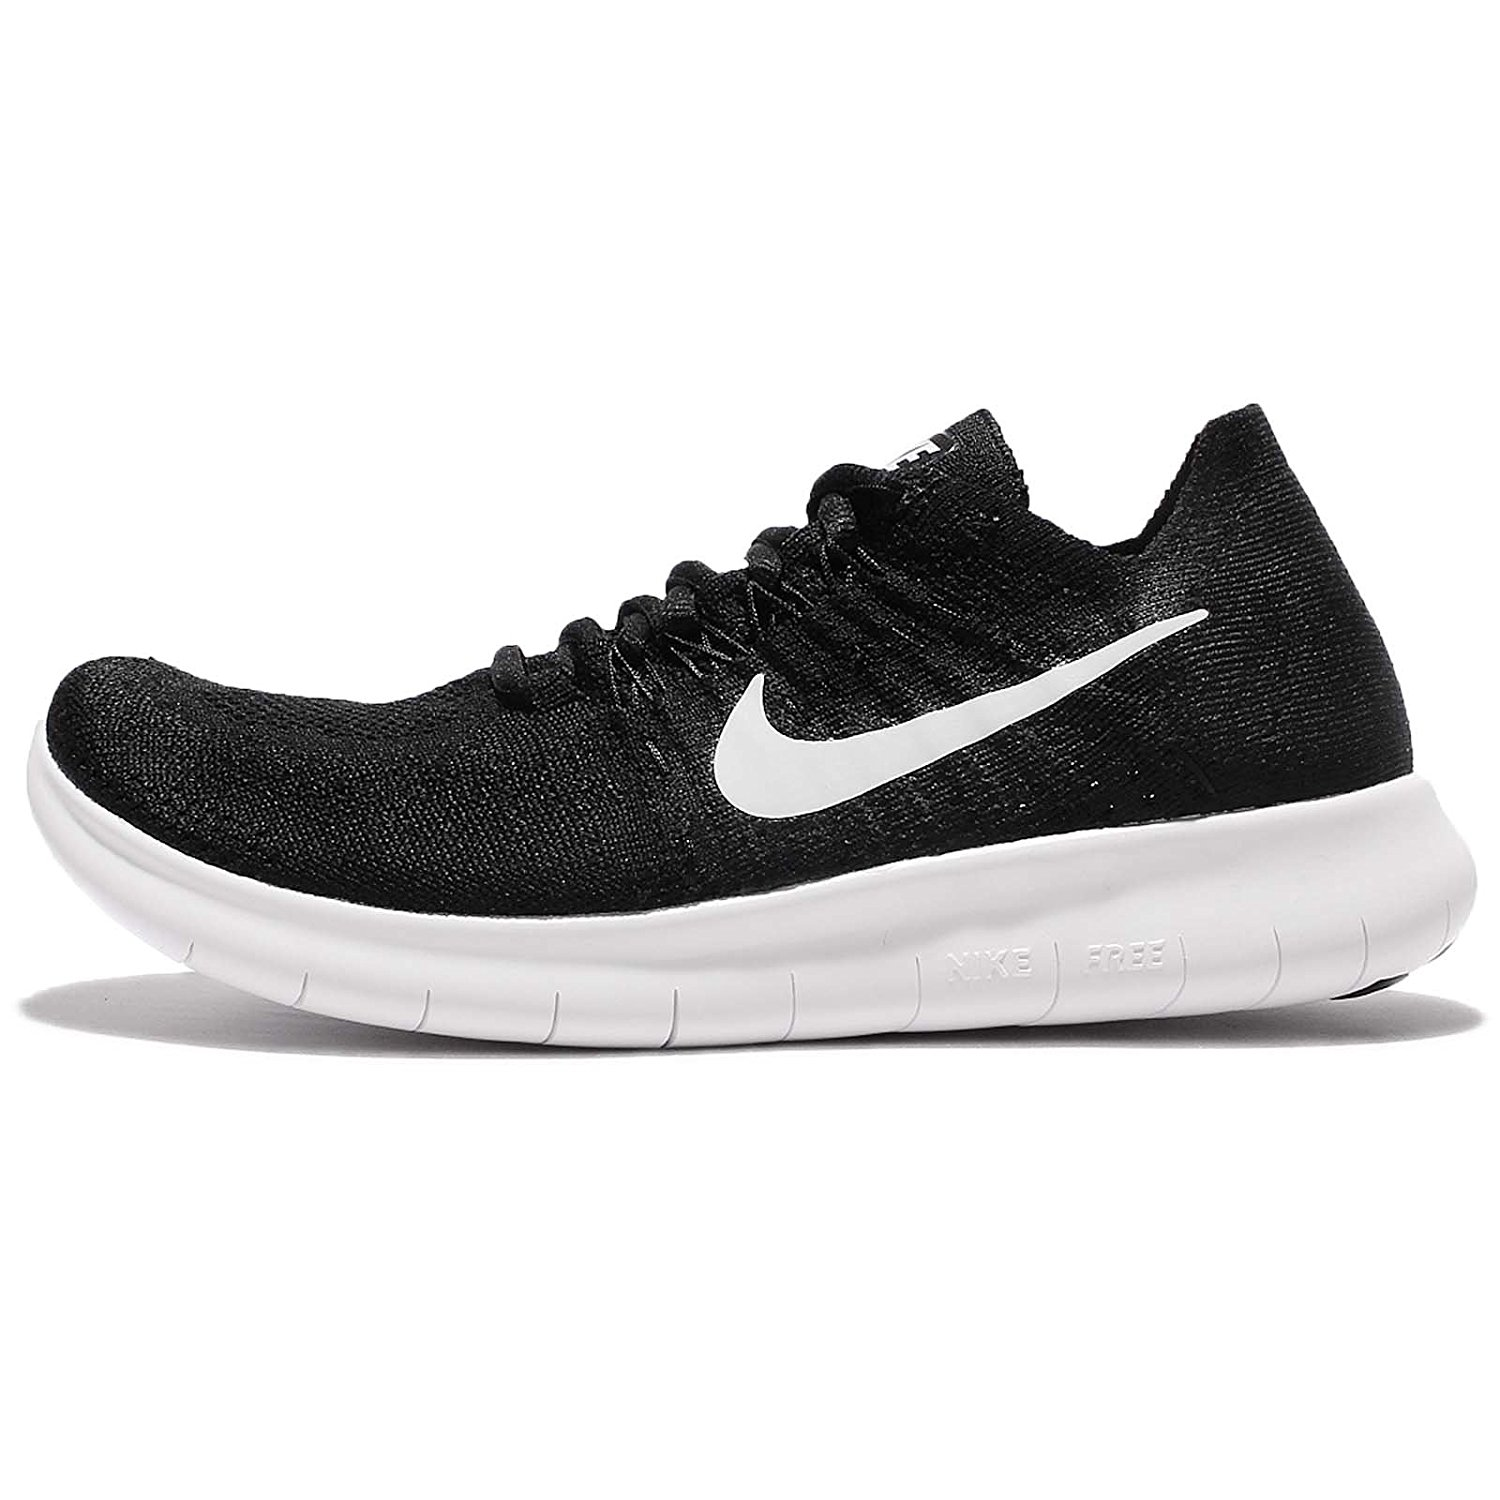 Nike Silhouette Shoes At Getdrawings Com Free For